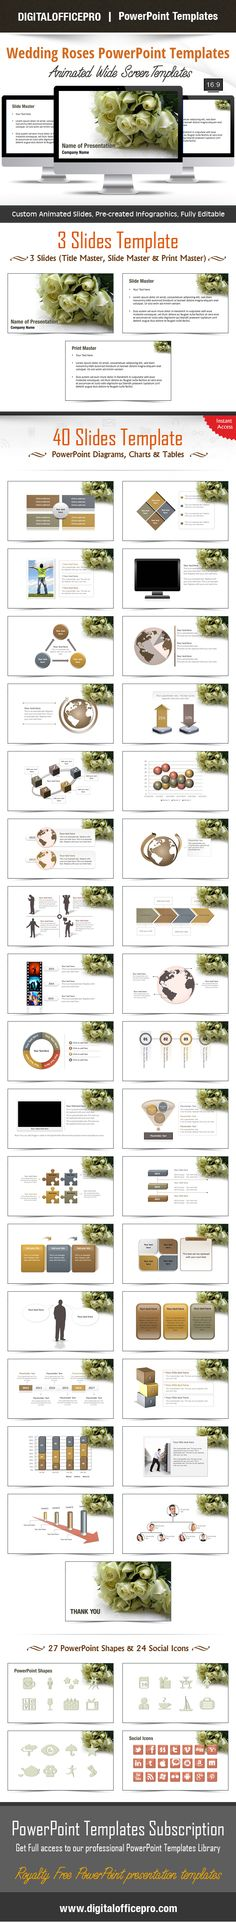 Impress and Engage your audience with Wedding Roses PowerPoint Template and Wedding Roses PowerPoint Backgrounds from DigitalOfficePro. Each template comes with a set of PowerPoint Diagrams, Charts & Shapes and are available for instant download.